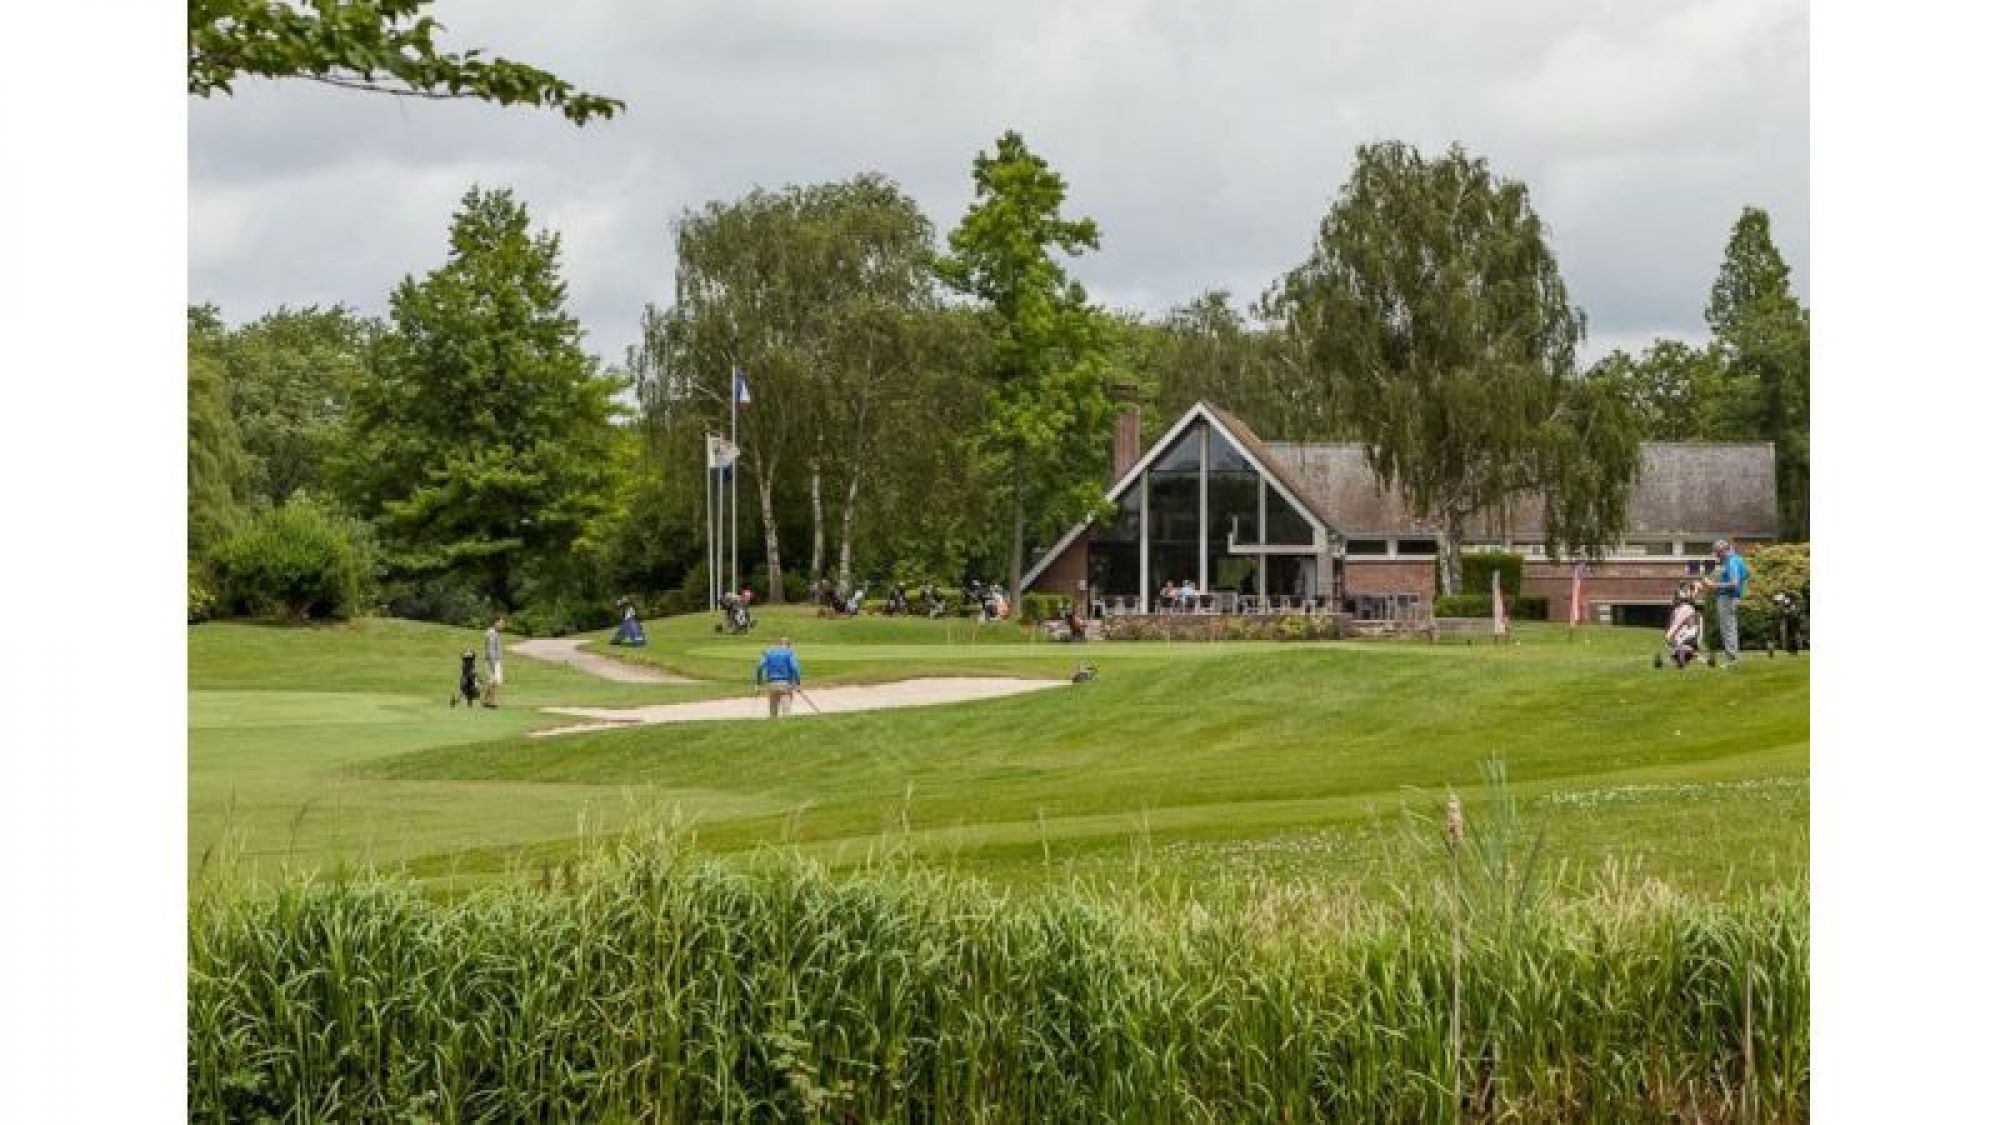 View Golf de Brigode's impressive golf course situated in dazzling Northern France.